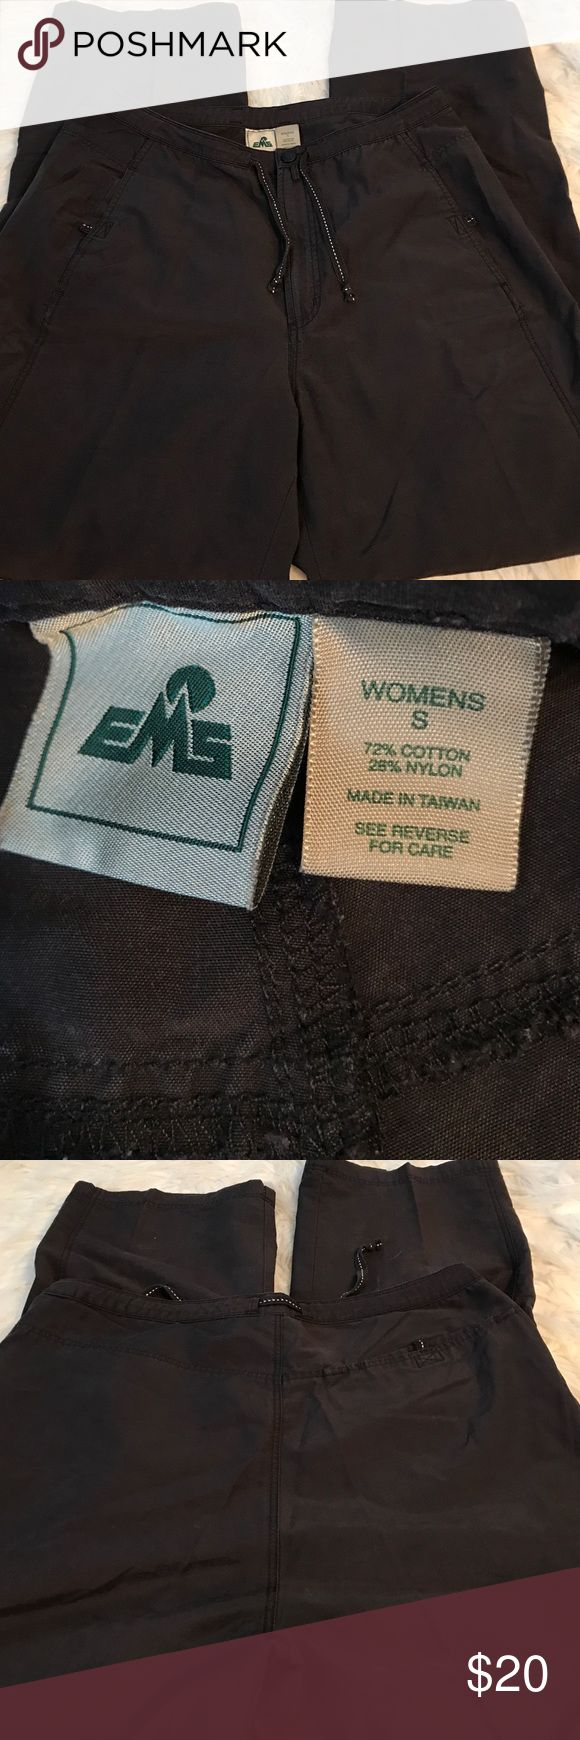 EMS Tactile pants Gently used in good condition. Only mild fading only price reflects this. These are emergency medical services tactile pants two front pockets one back pocket size small color black.29 inch waist 29 inch inseam emergency medical services Pants